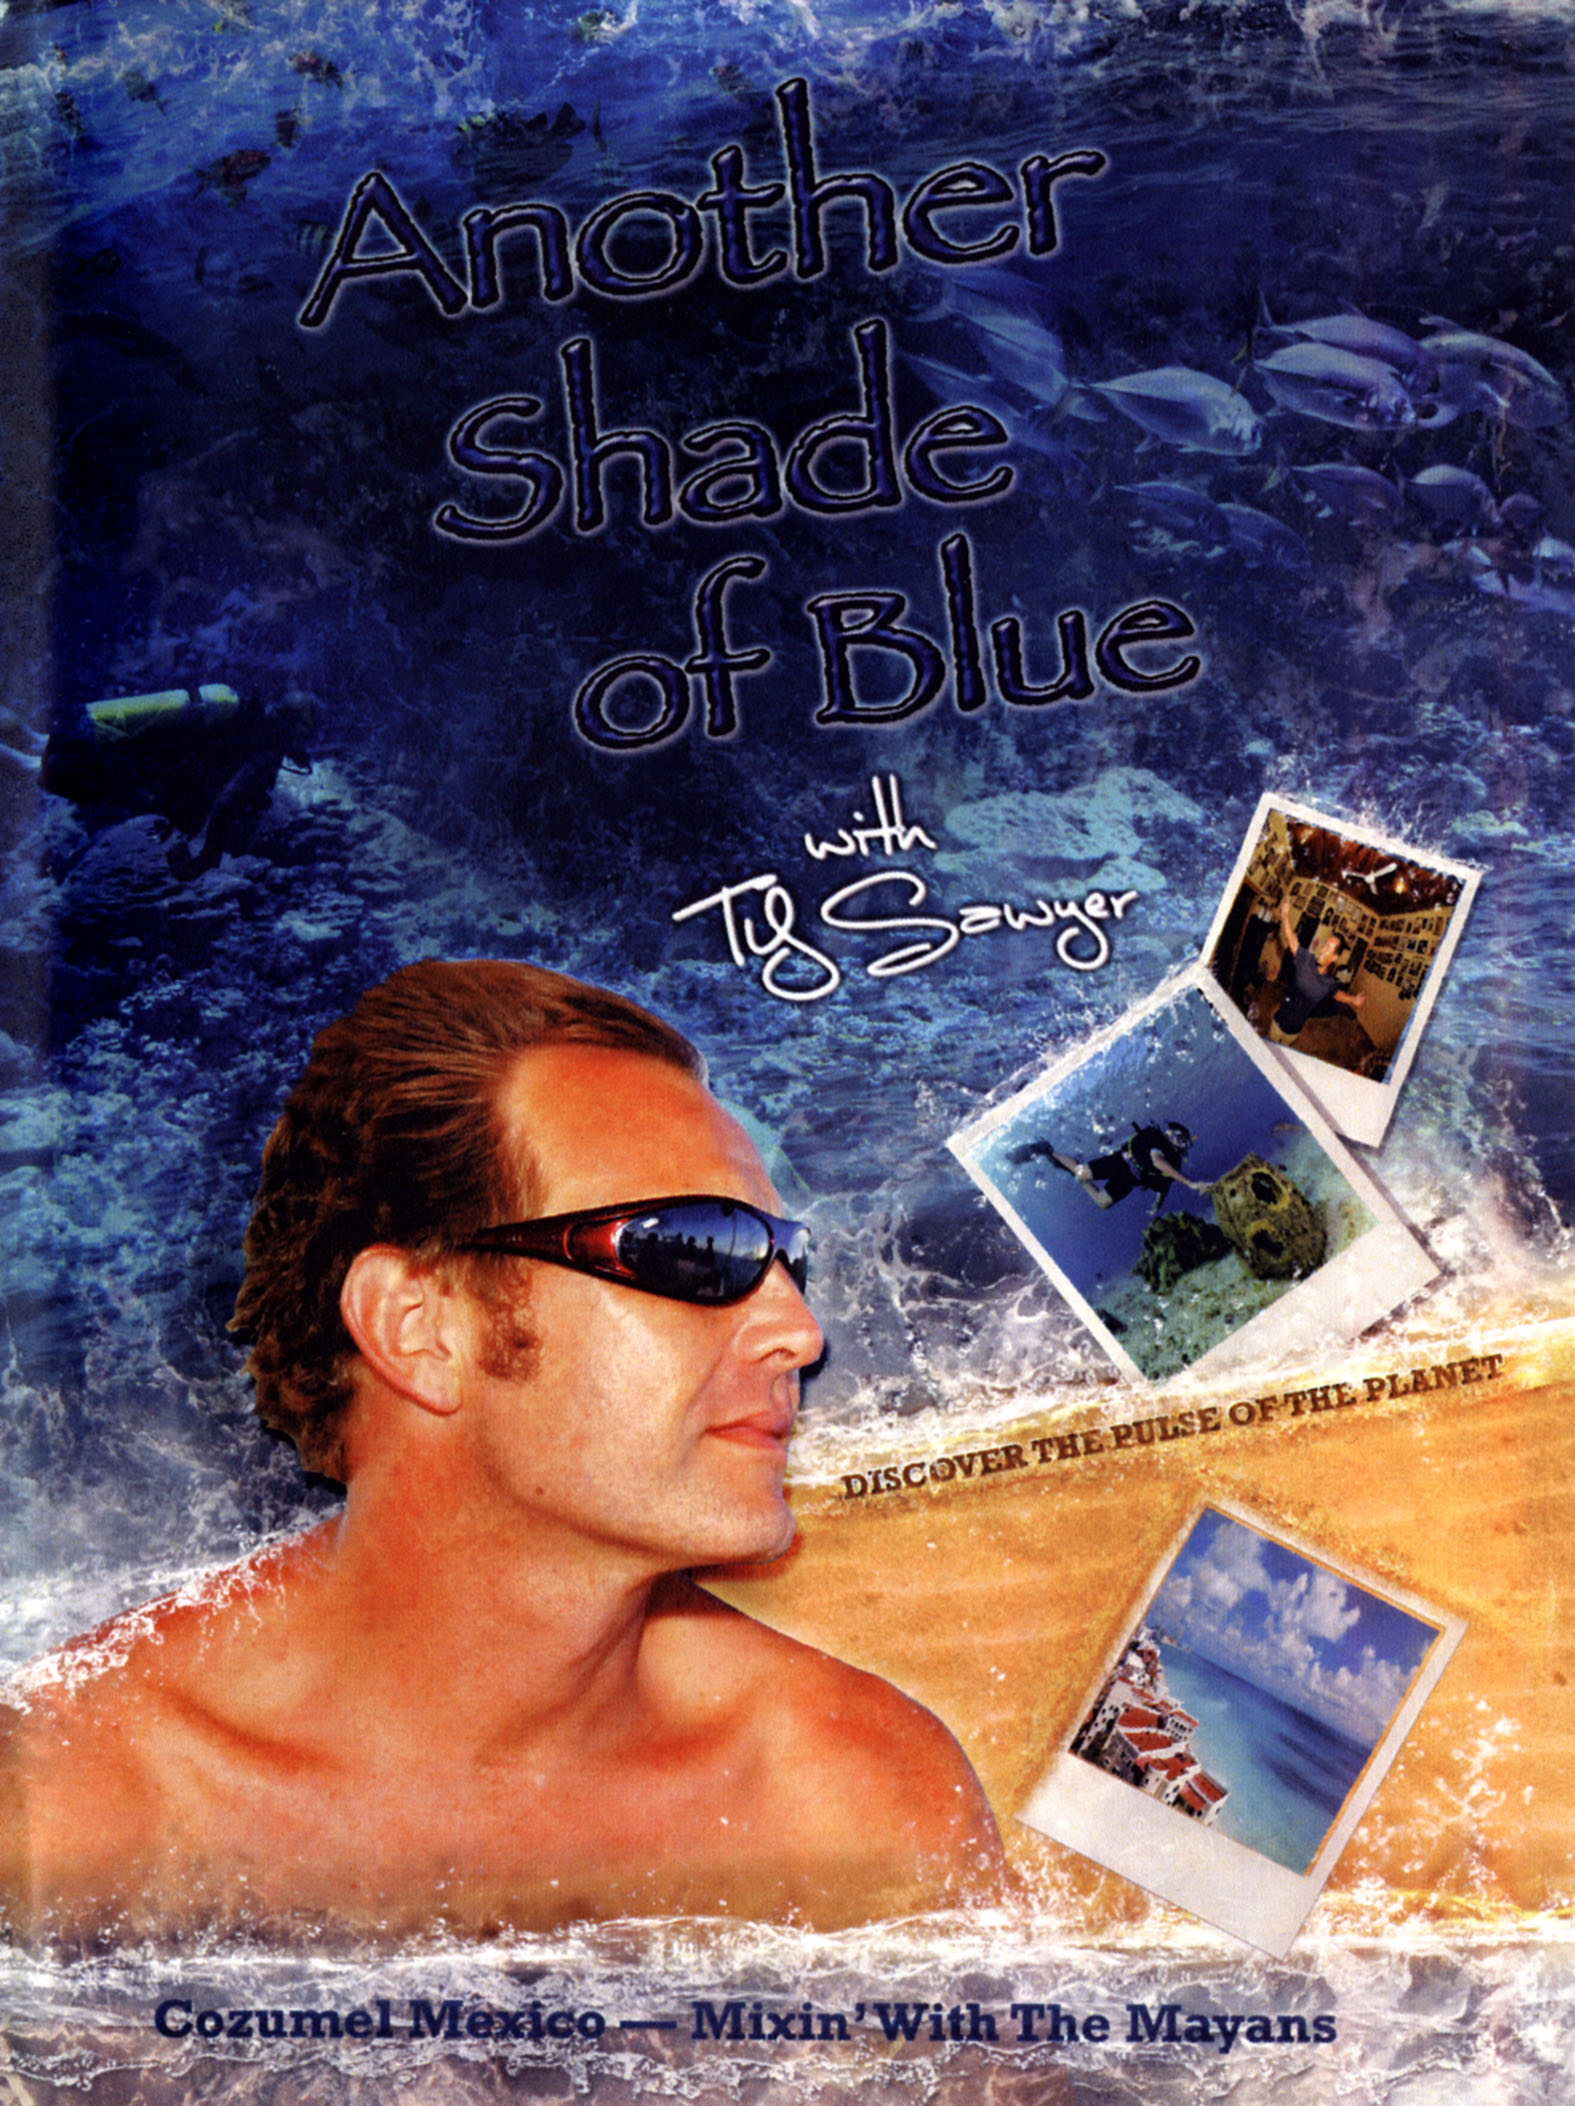 Another Shade of Blue: Cozumel Mexico - Mixin' With the Mayans